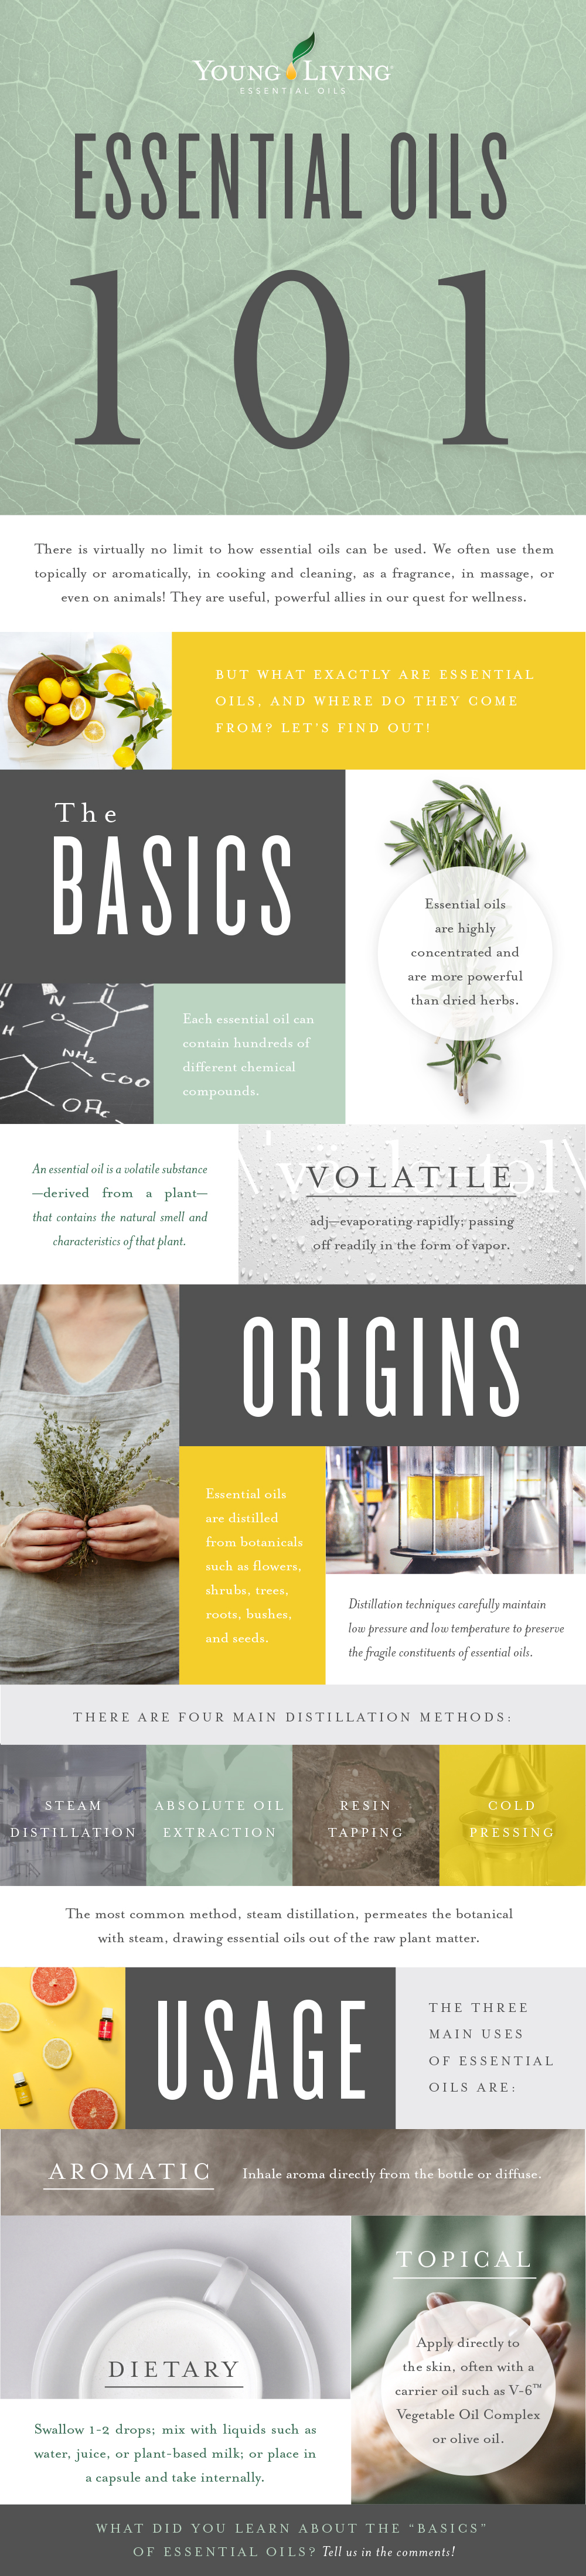 Essential Oils 101: The Basics - Young Living